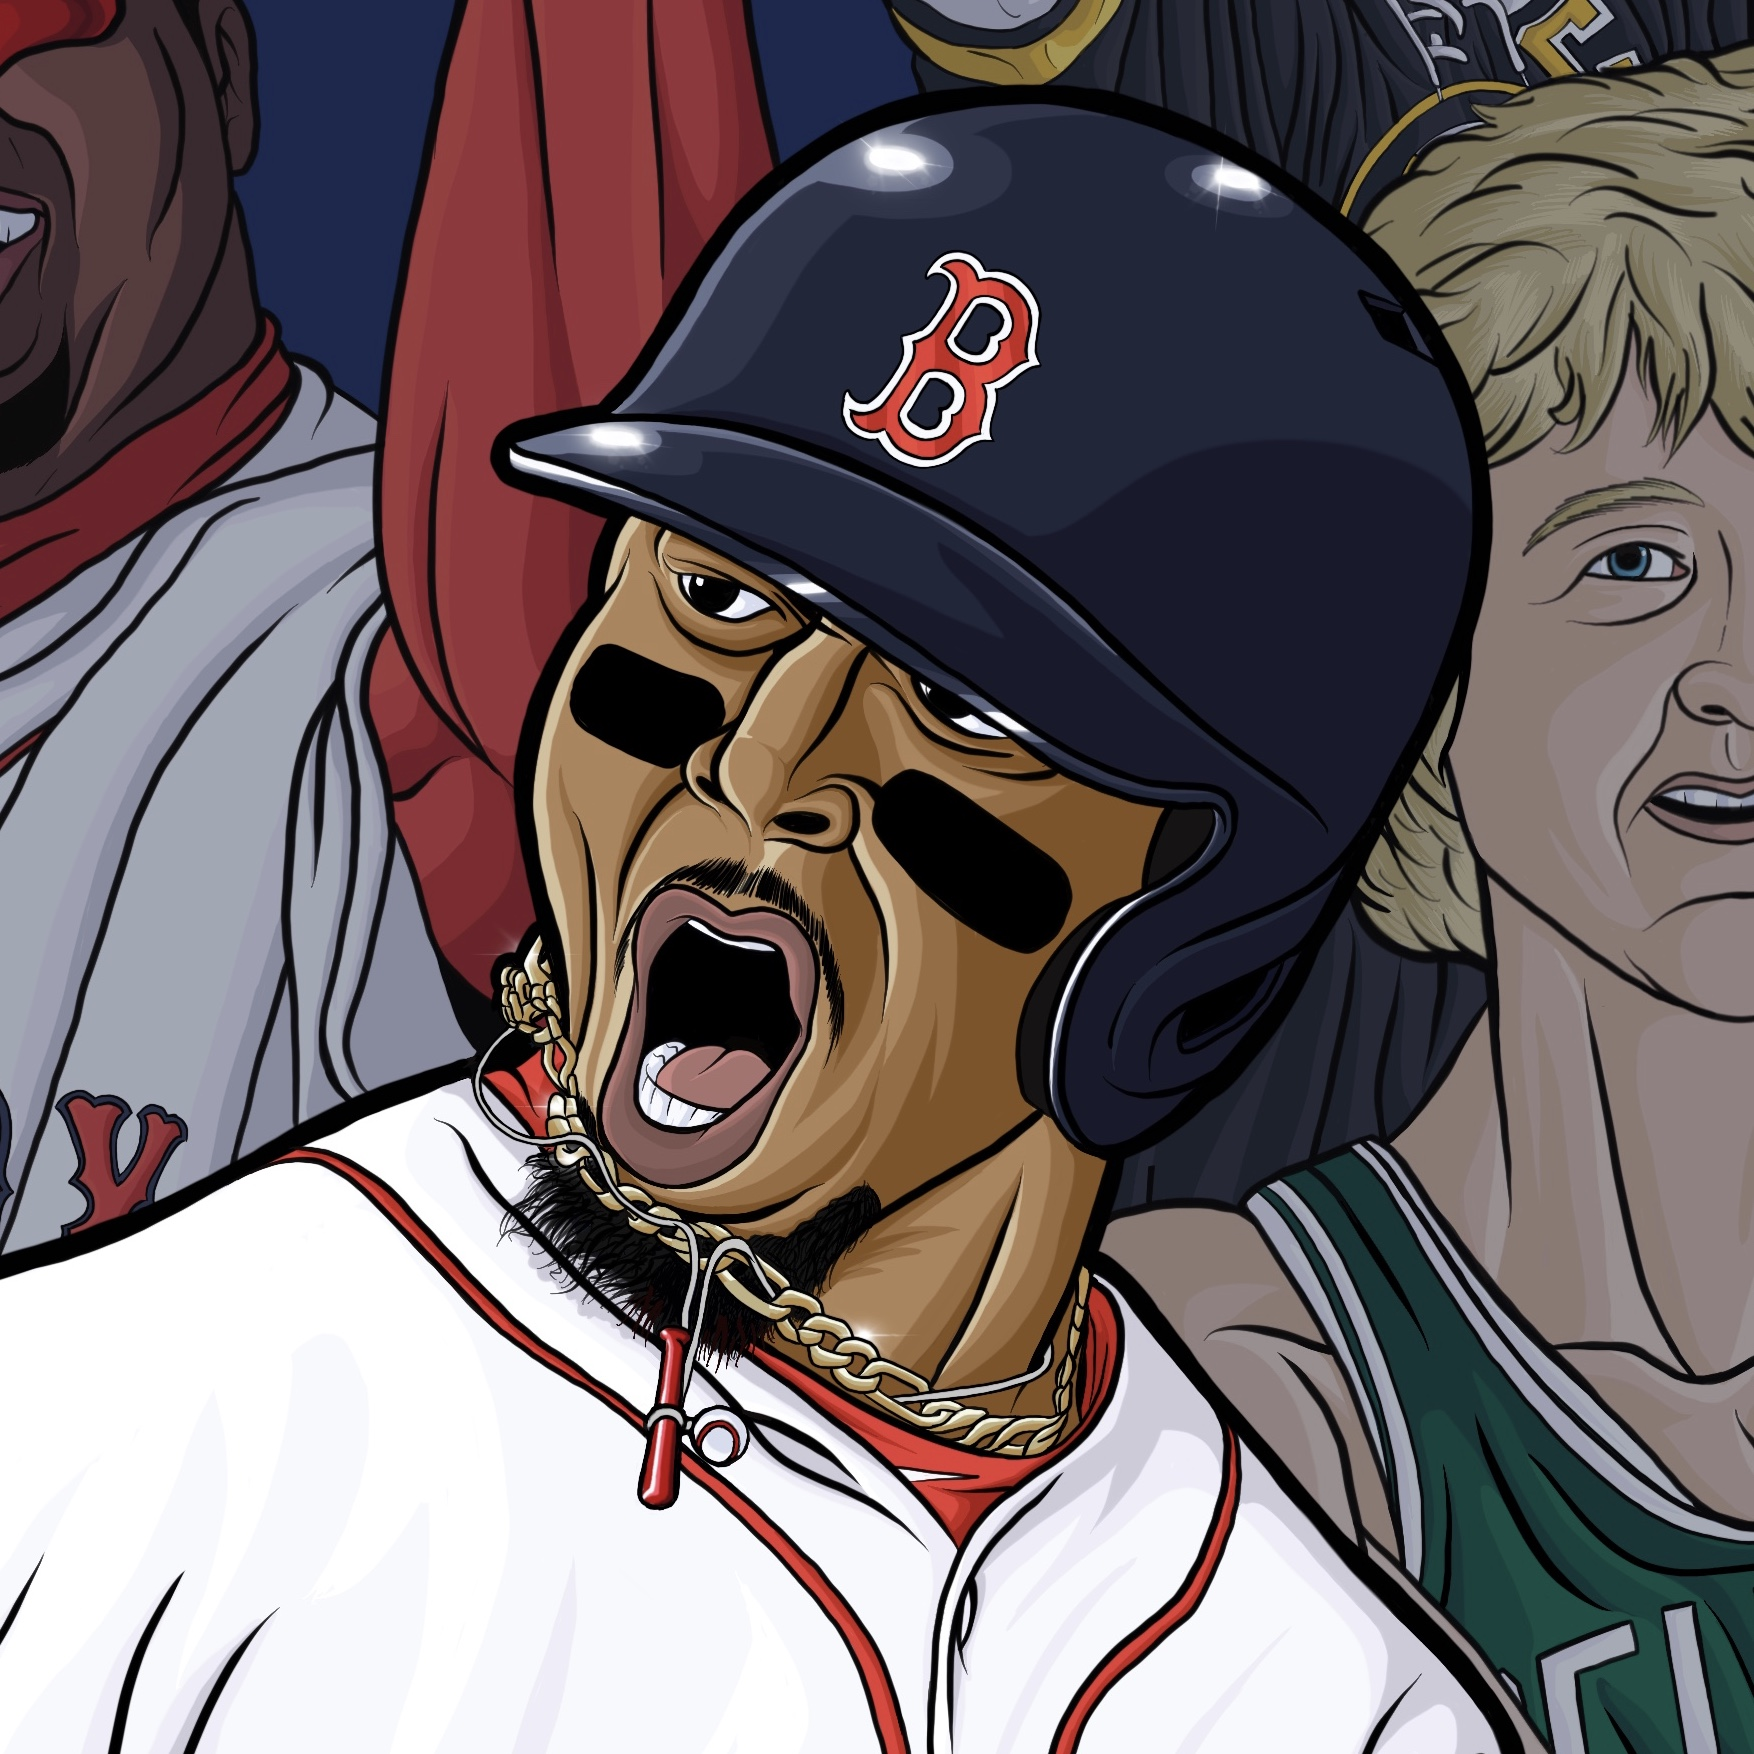 mlb-redsox-championship-illustration-mookie-betts.JPG